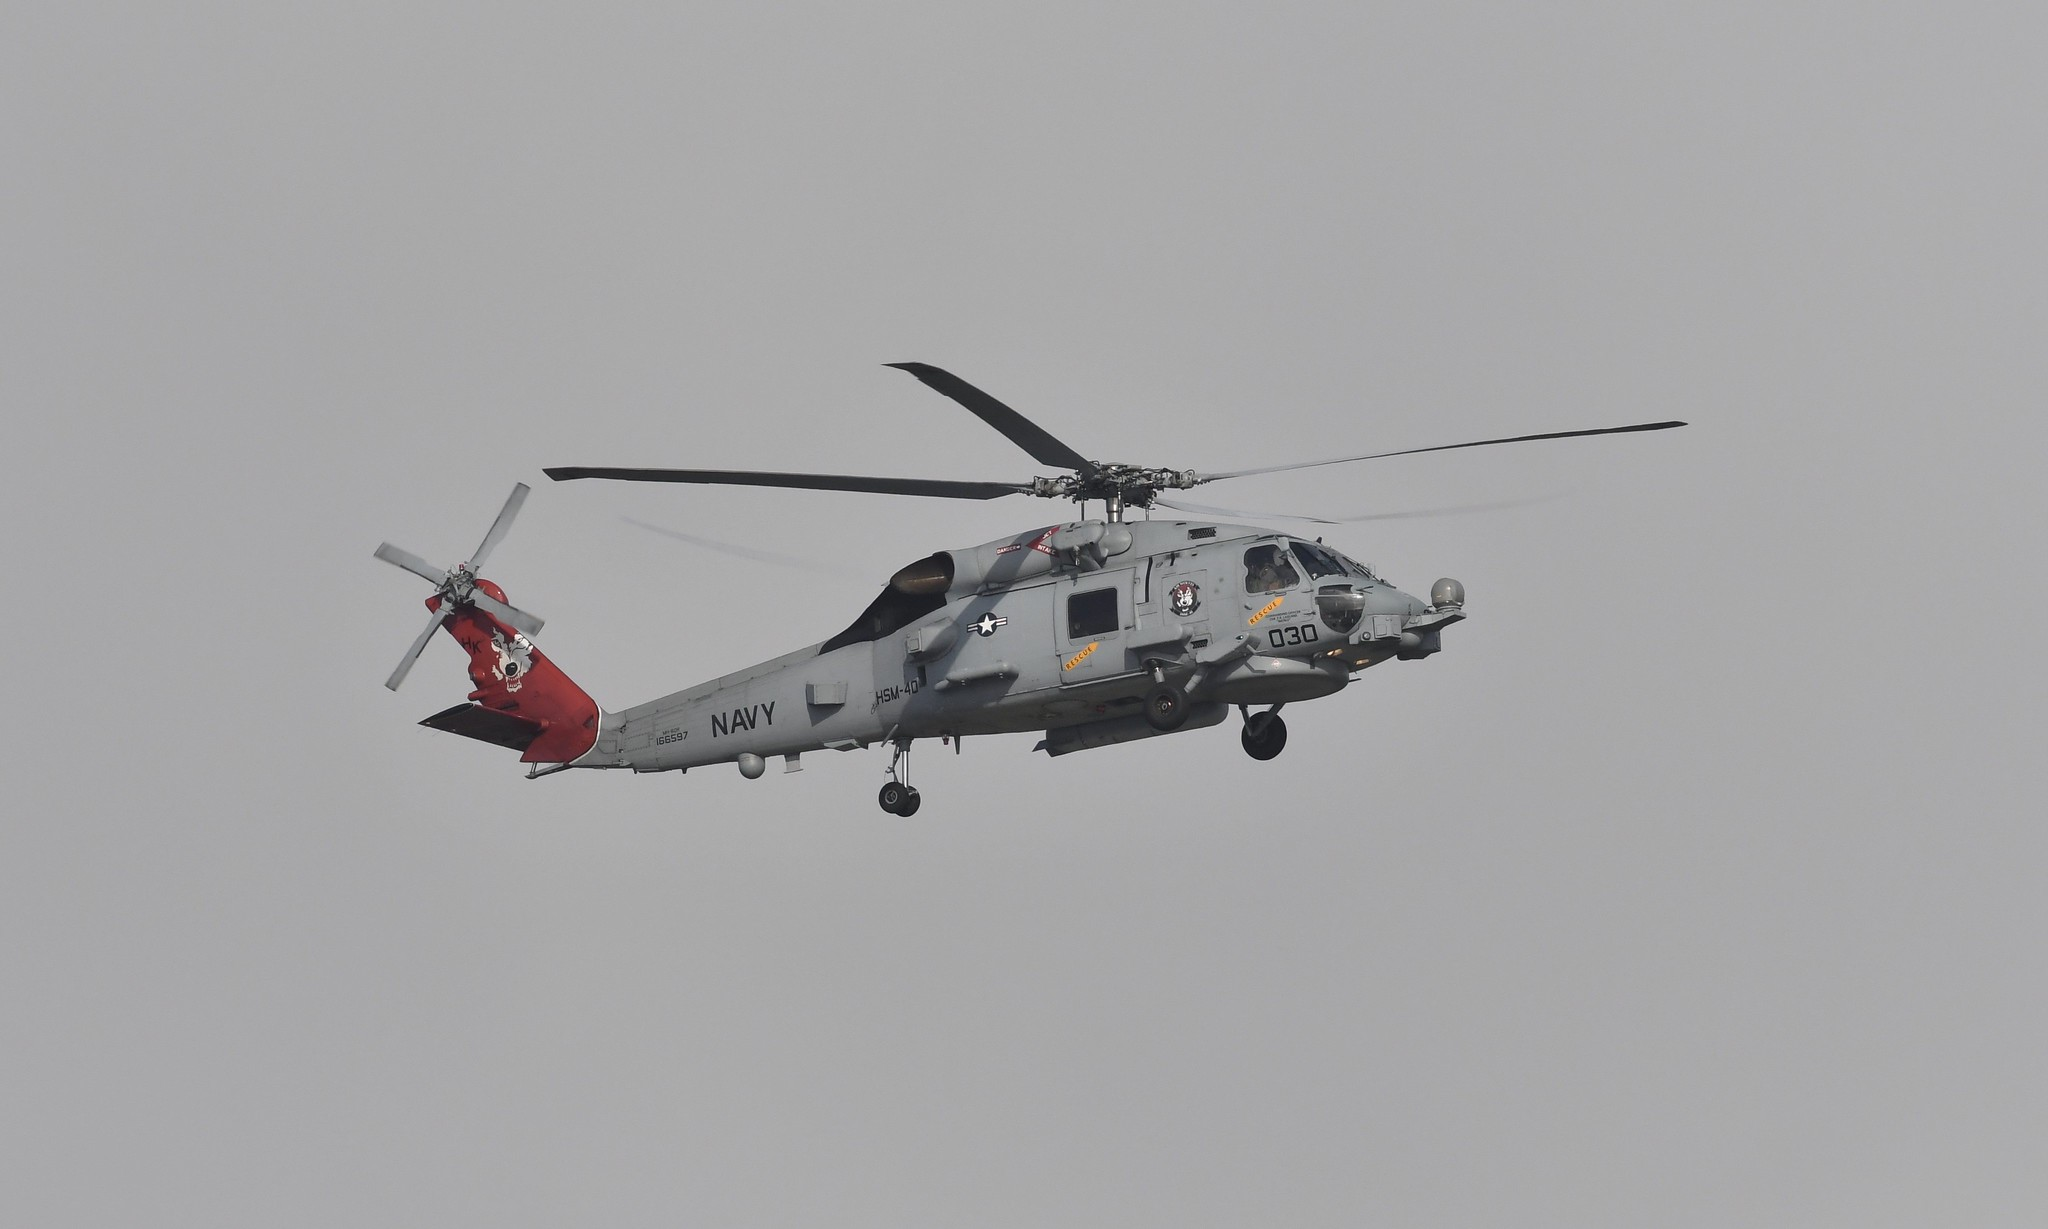 NAS Mayport - (Red Tail) USN Helicopter